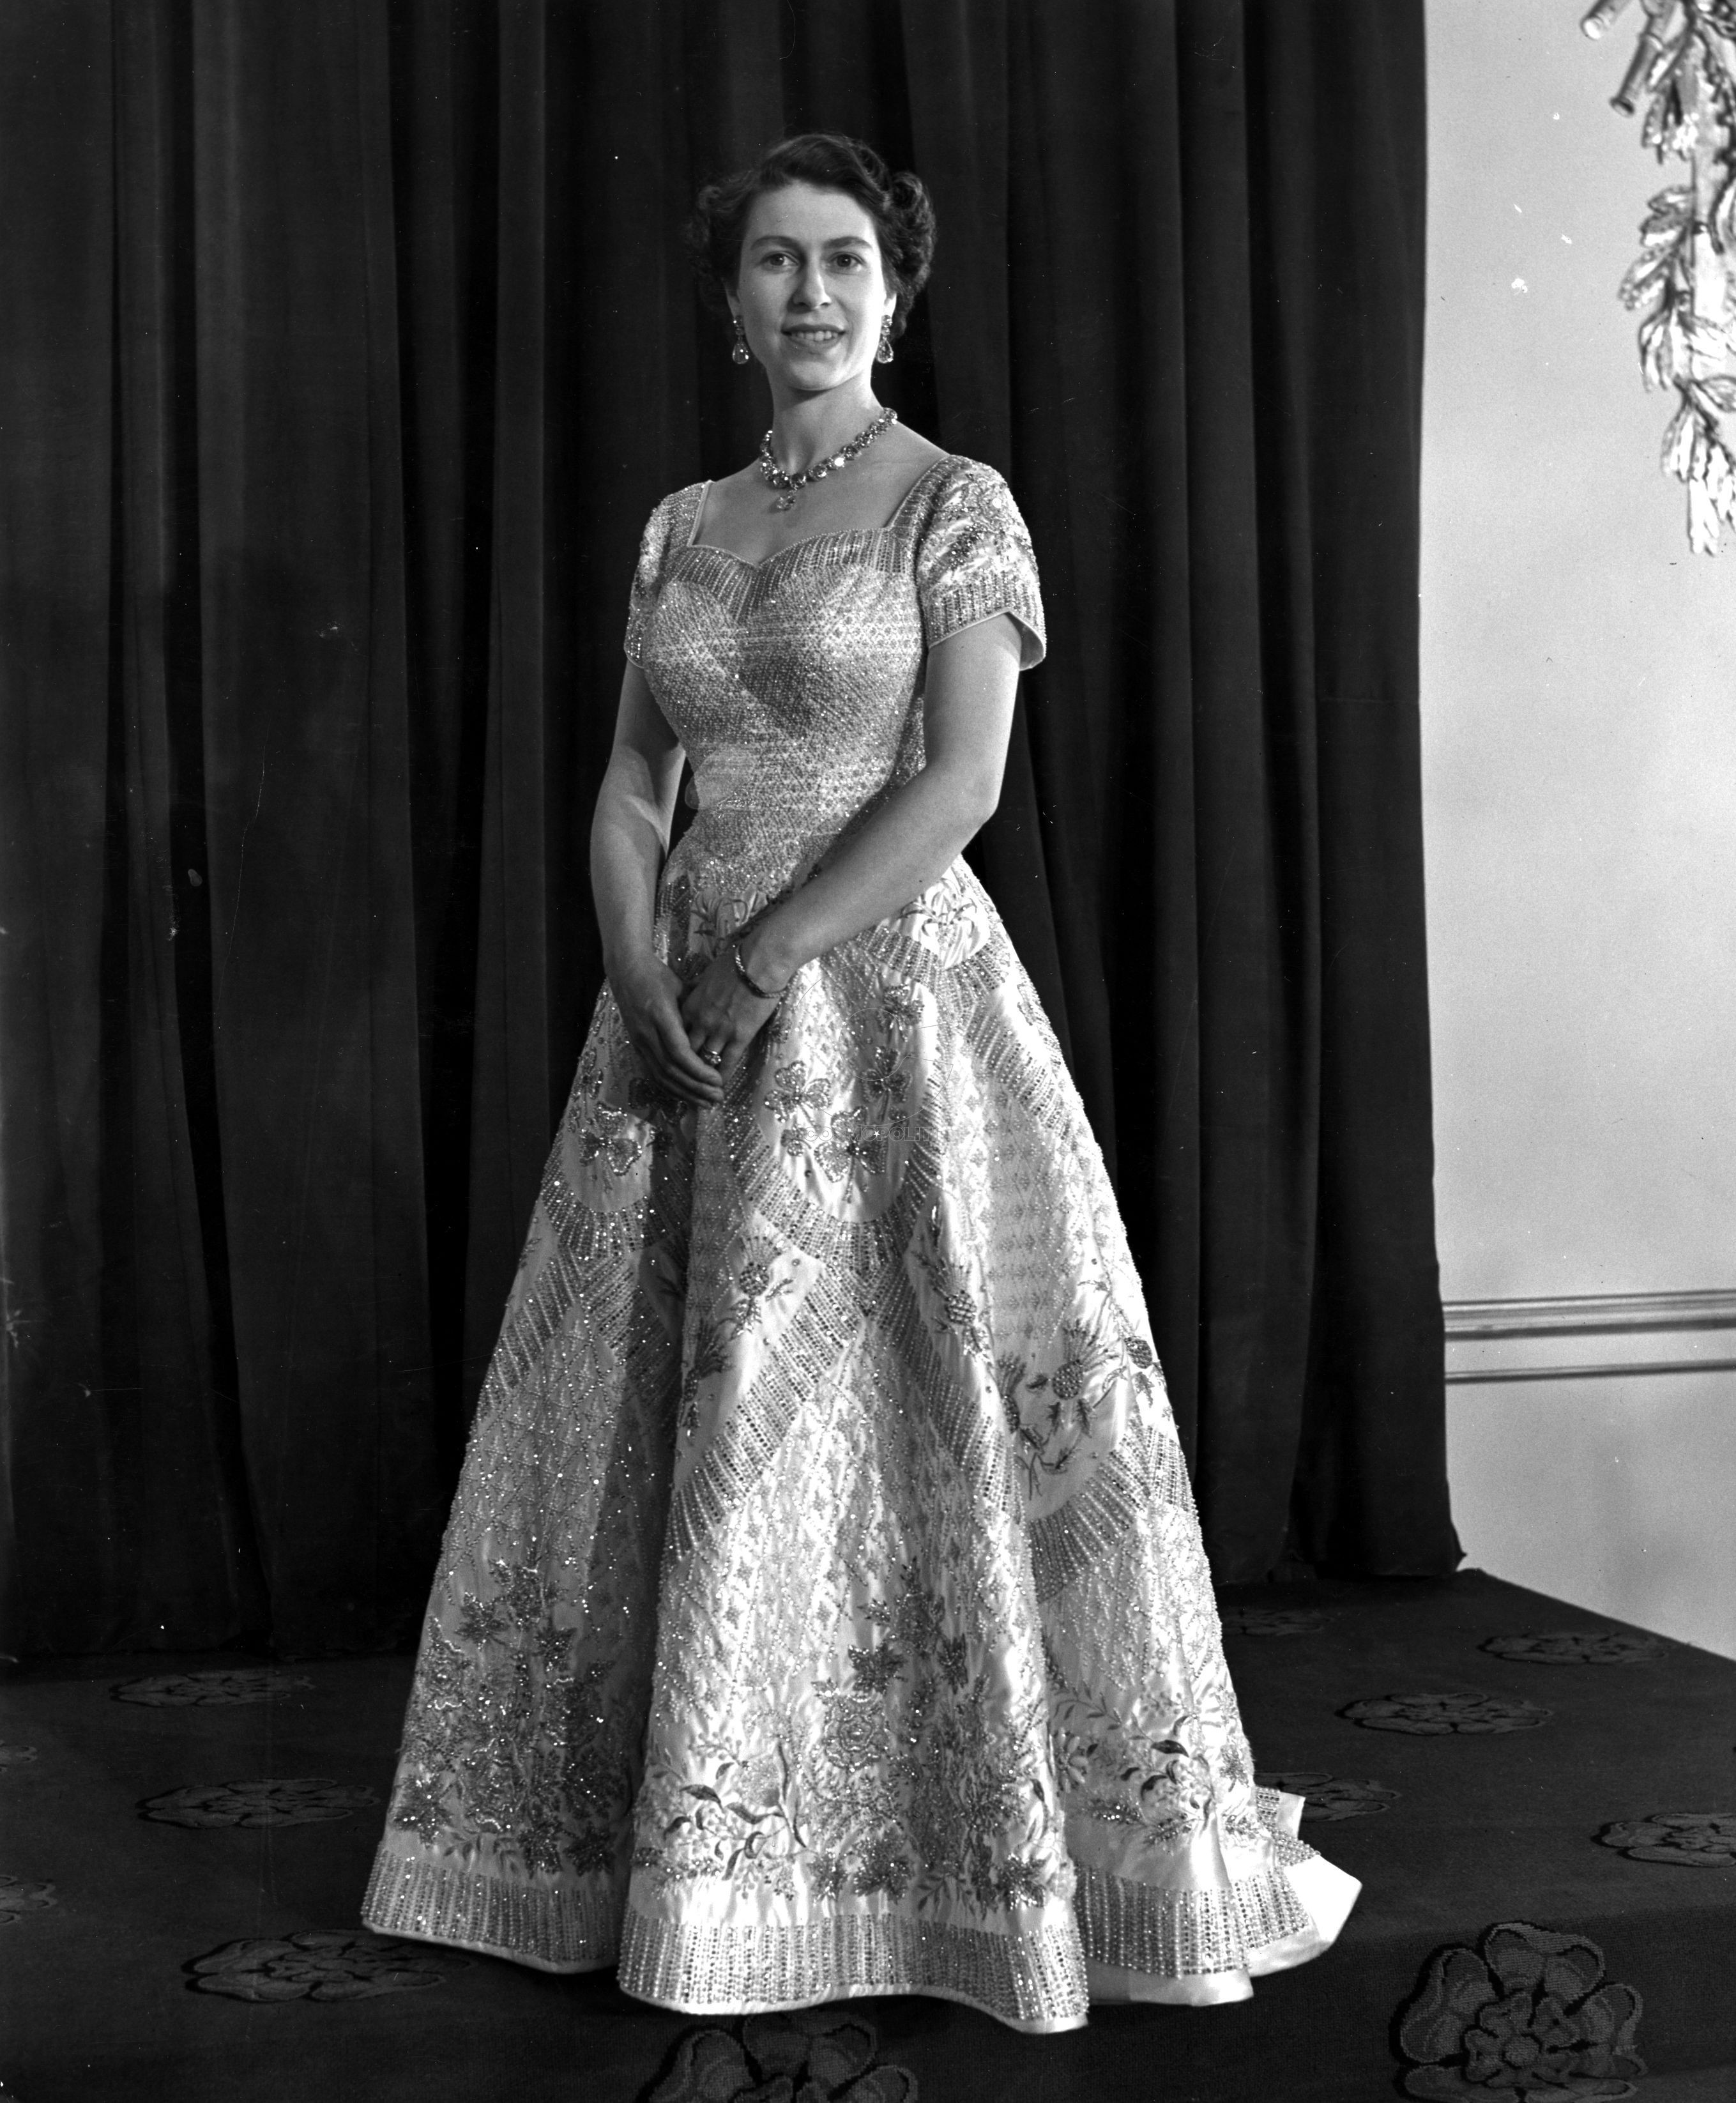 queen-elizabeth-ii-1953-coronation-gown (1)